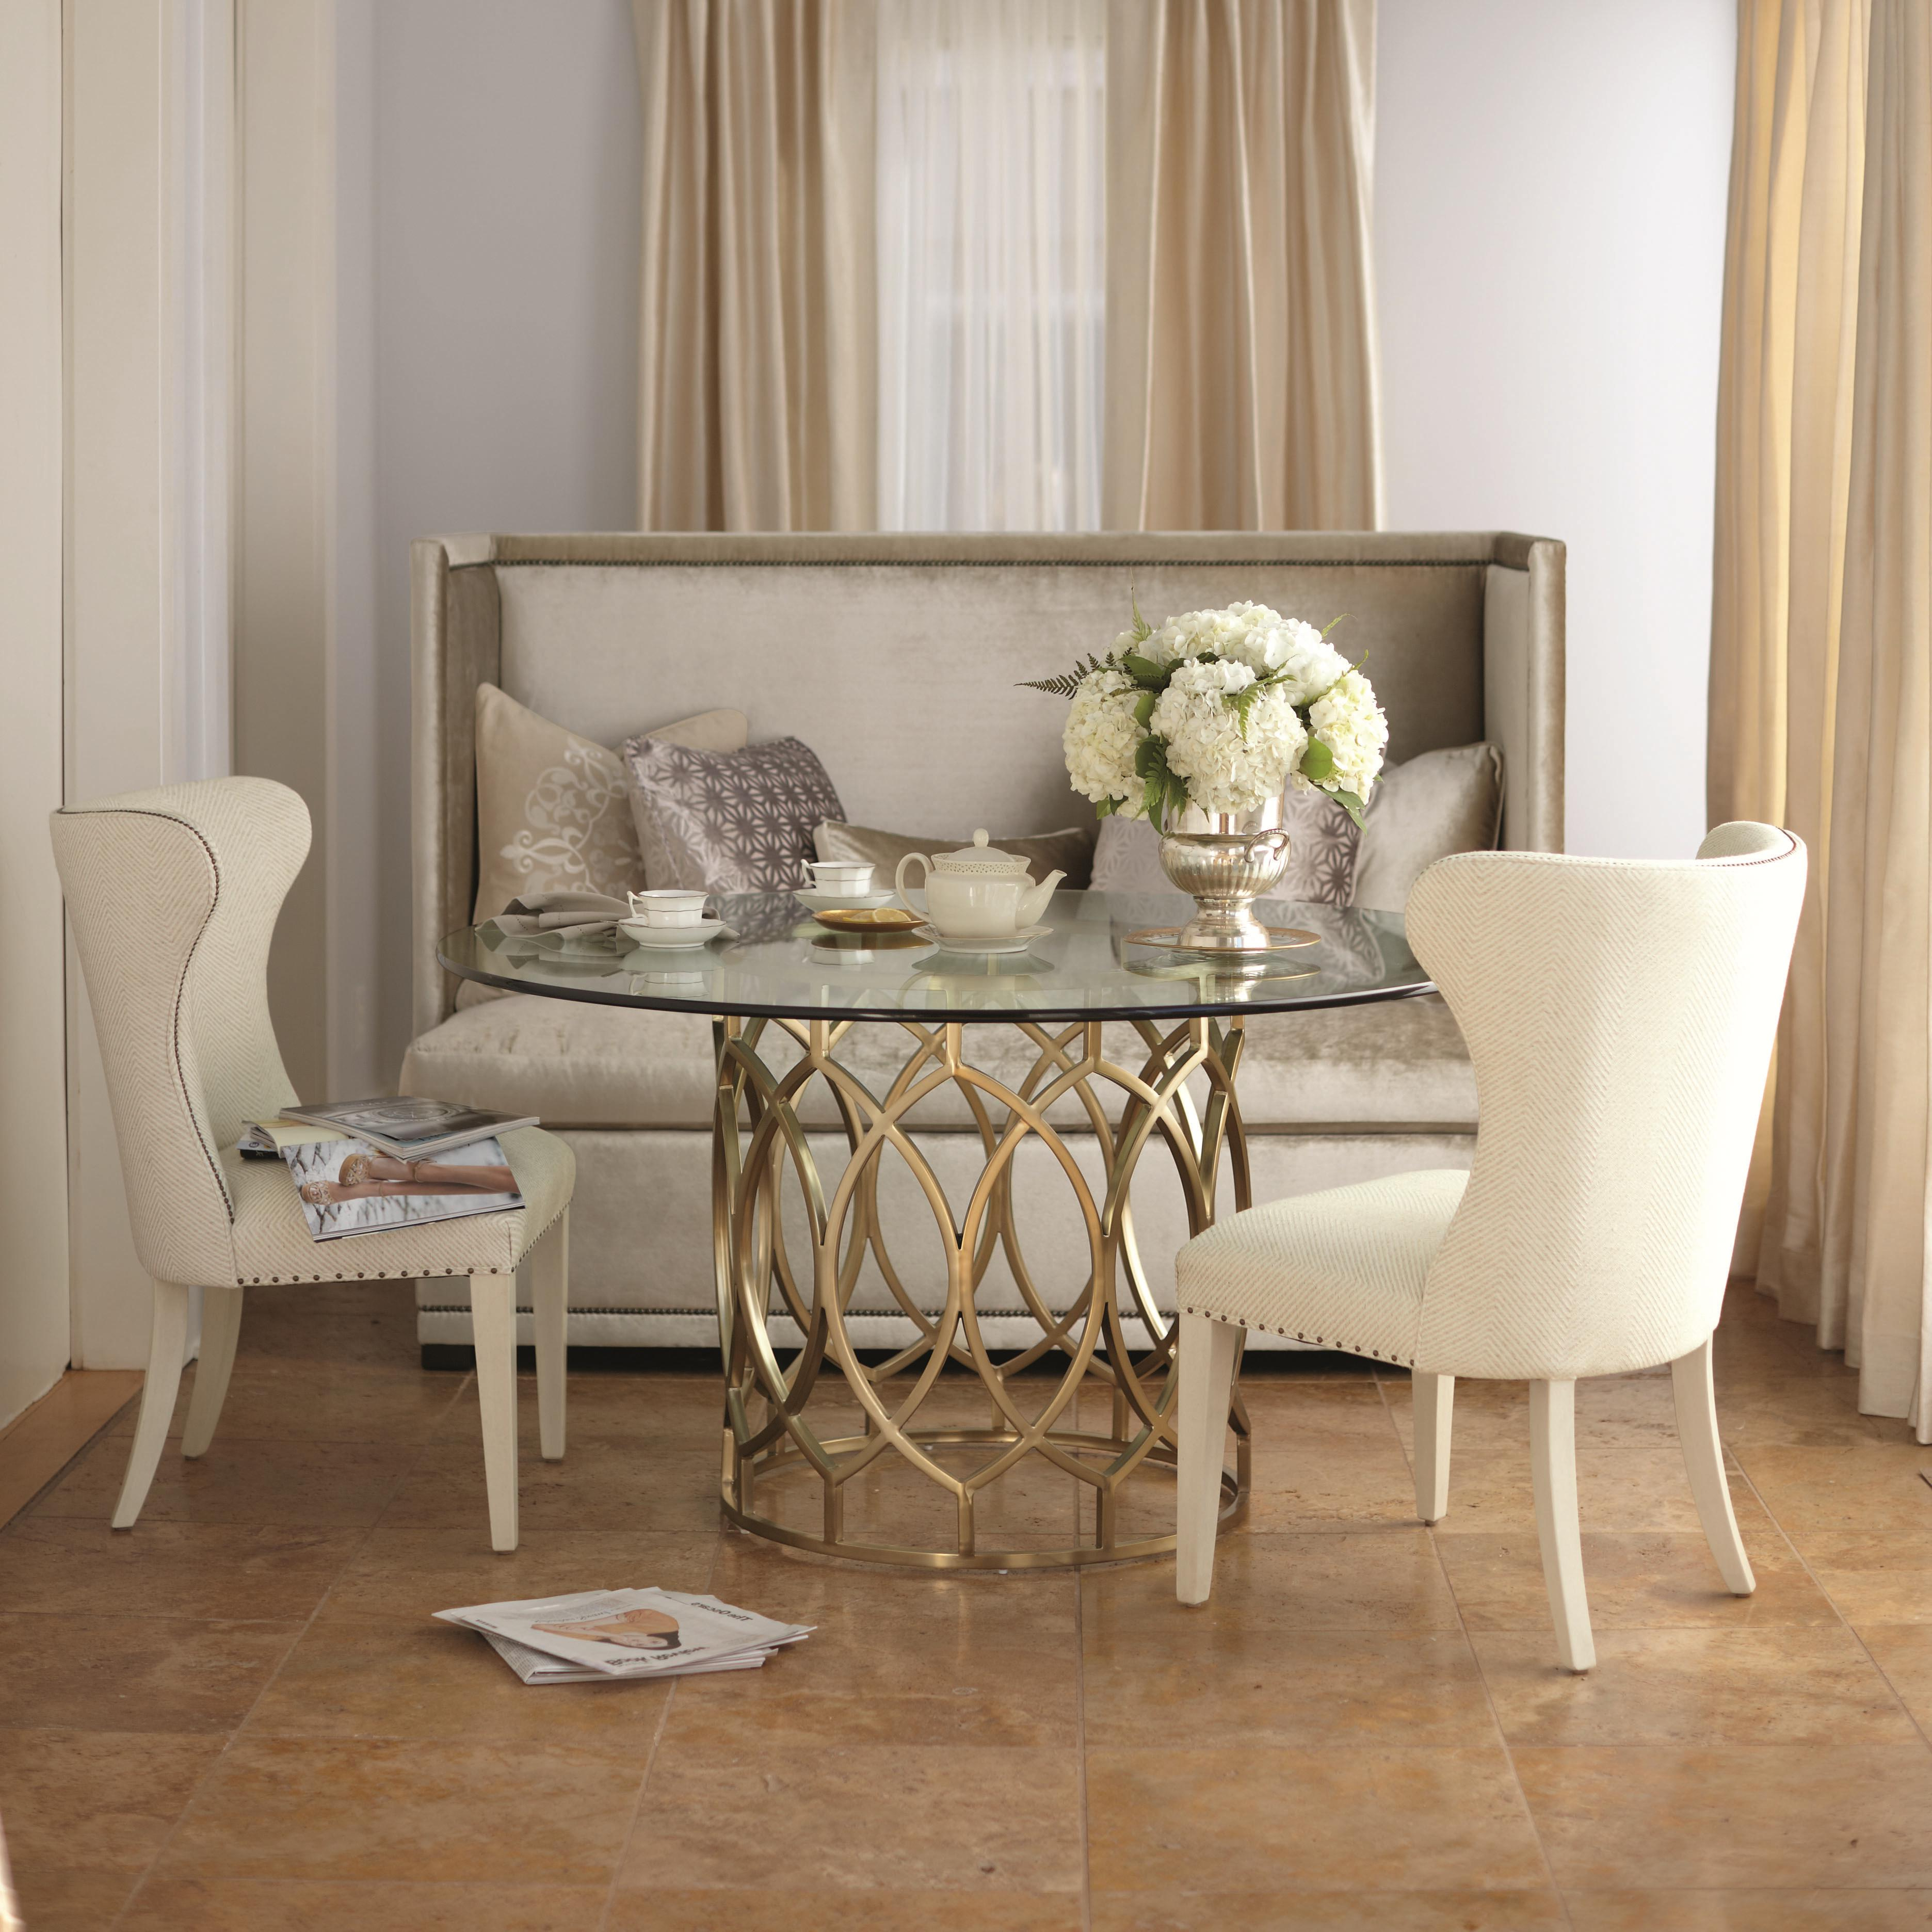 Newest 3 Piece Dining Sets With Salon 3 Piece Dining Set With Round Glass Top Tablebernhardt At Dunk & Bright Furniture (View 5 of 20)